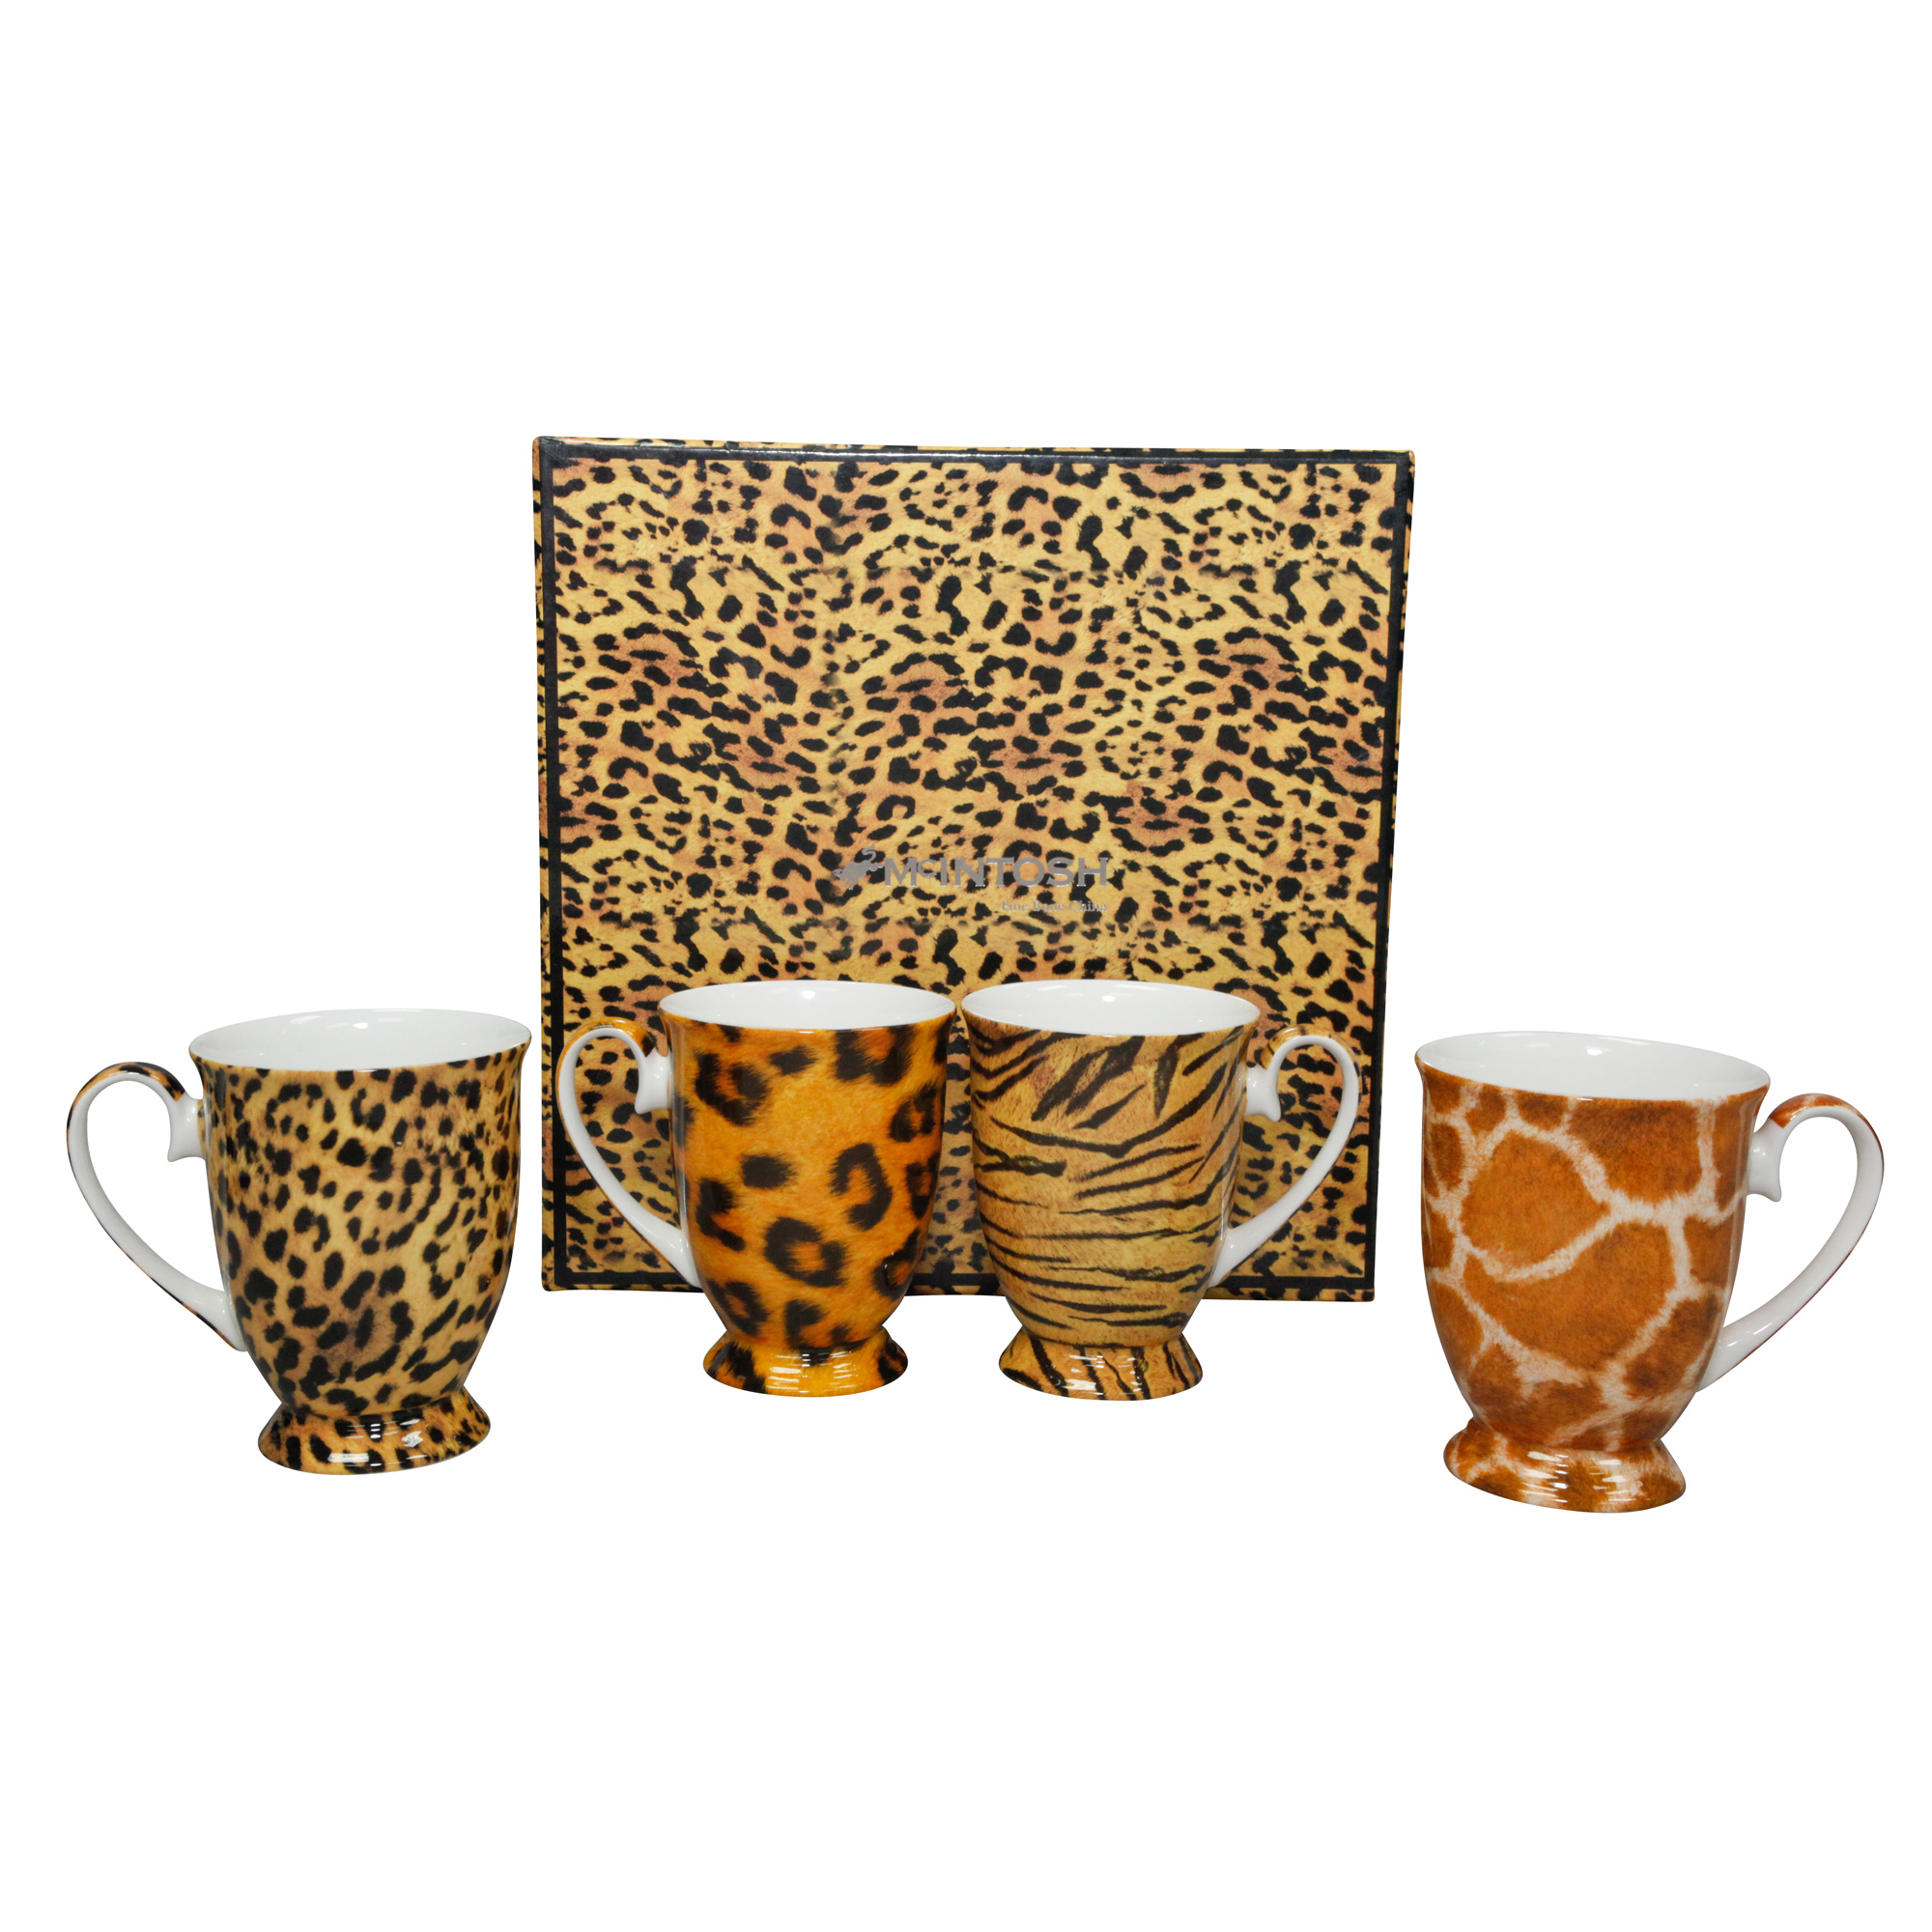 Go Wild Set of 4 Mugs